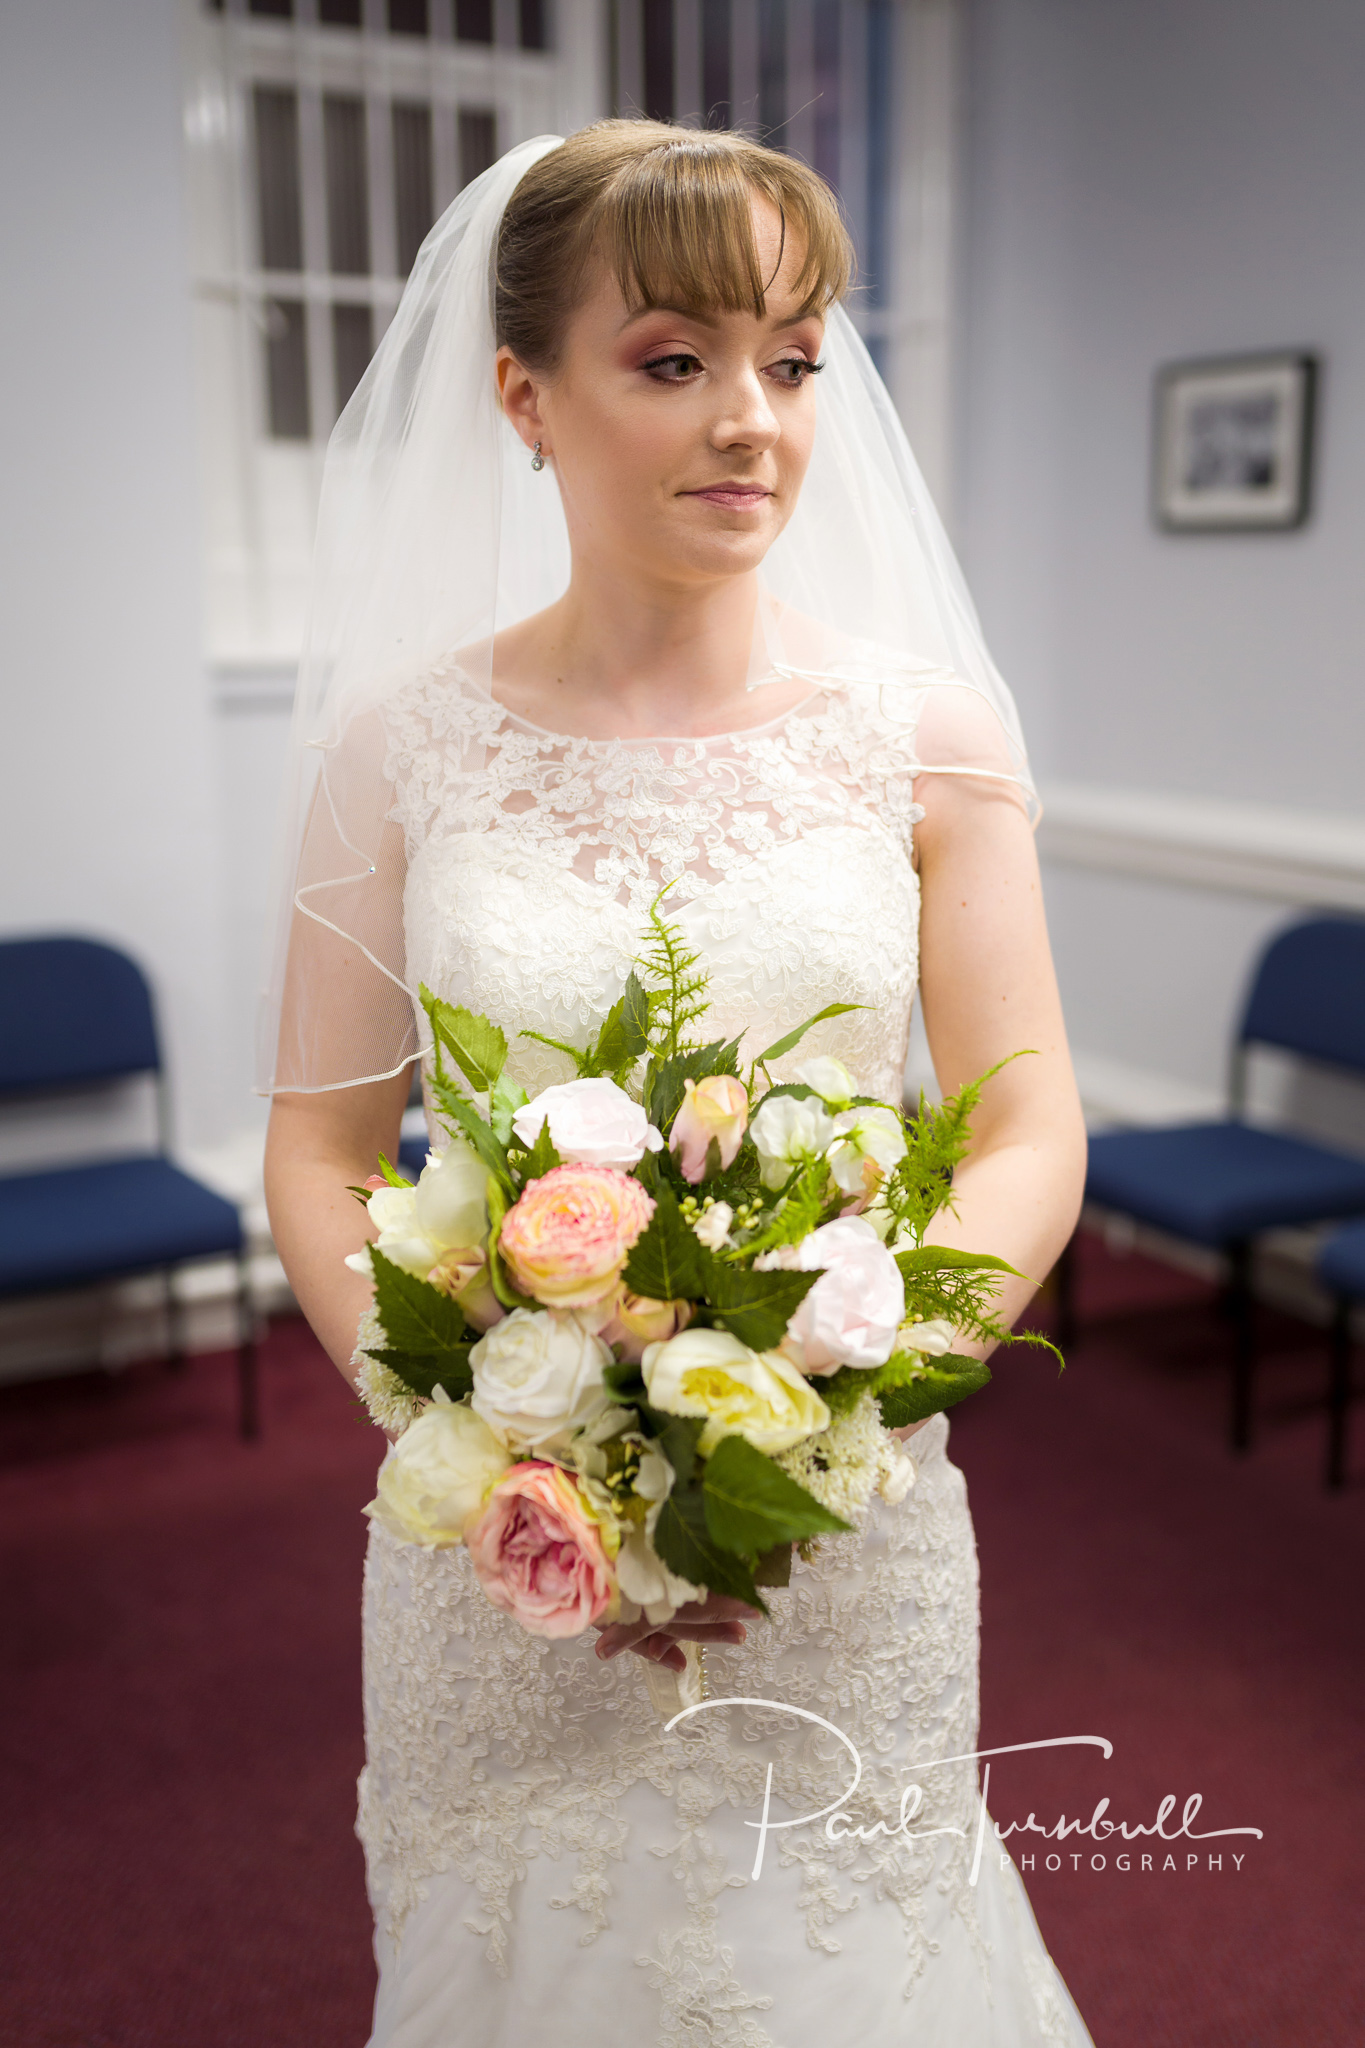 wedding-photographer-pontefract-yorkshire-laura-keanu-015.jpg